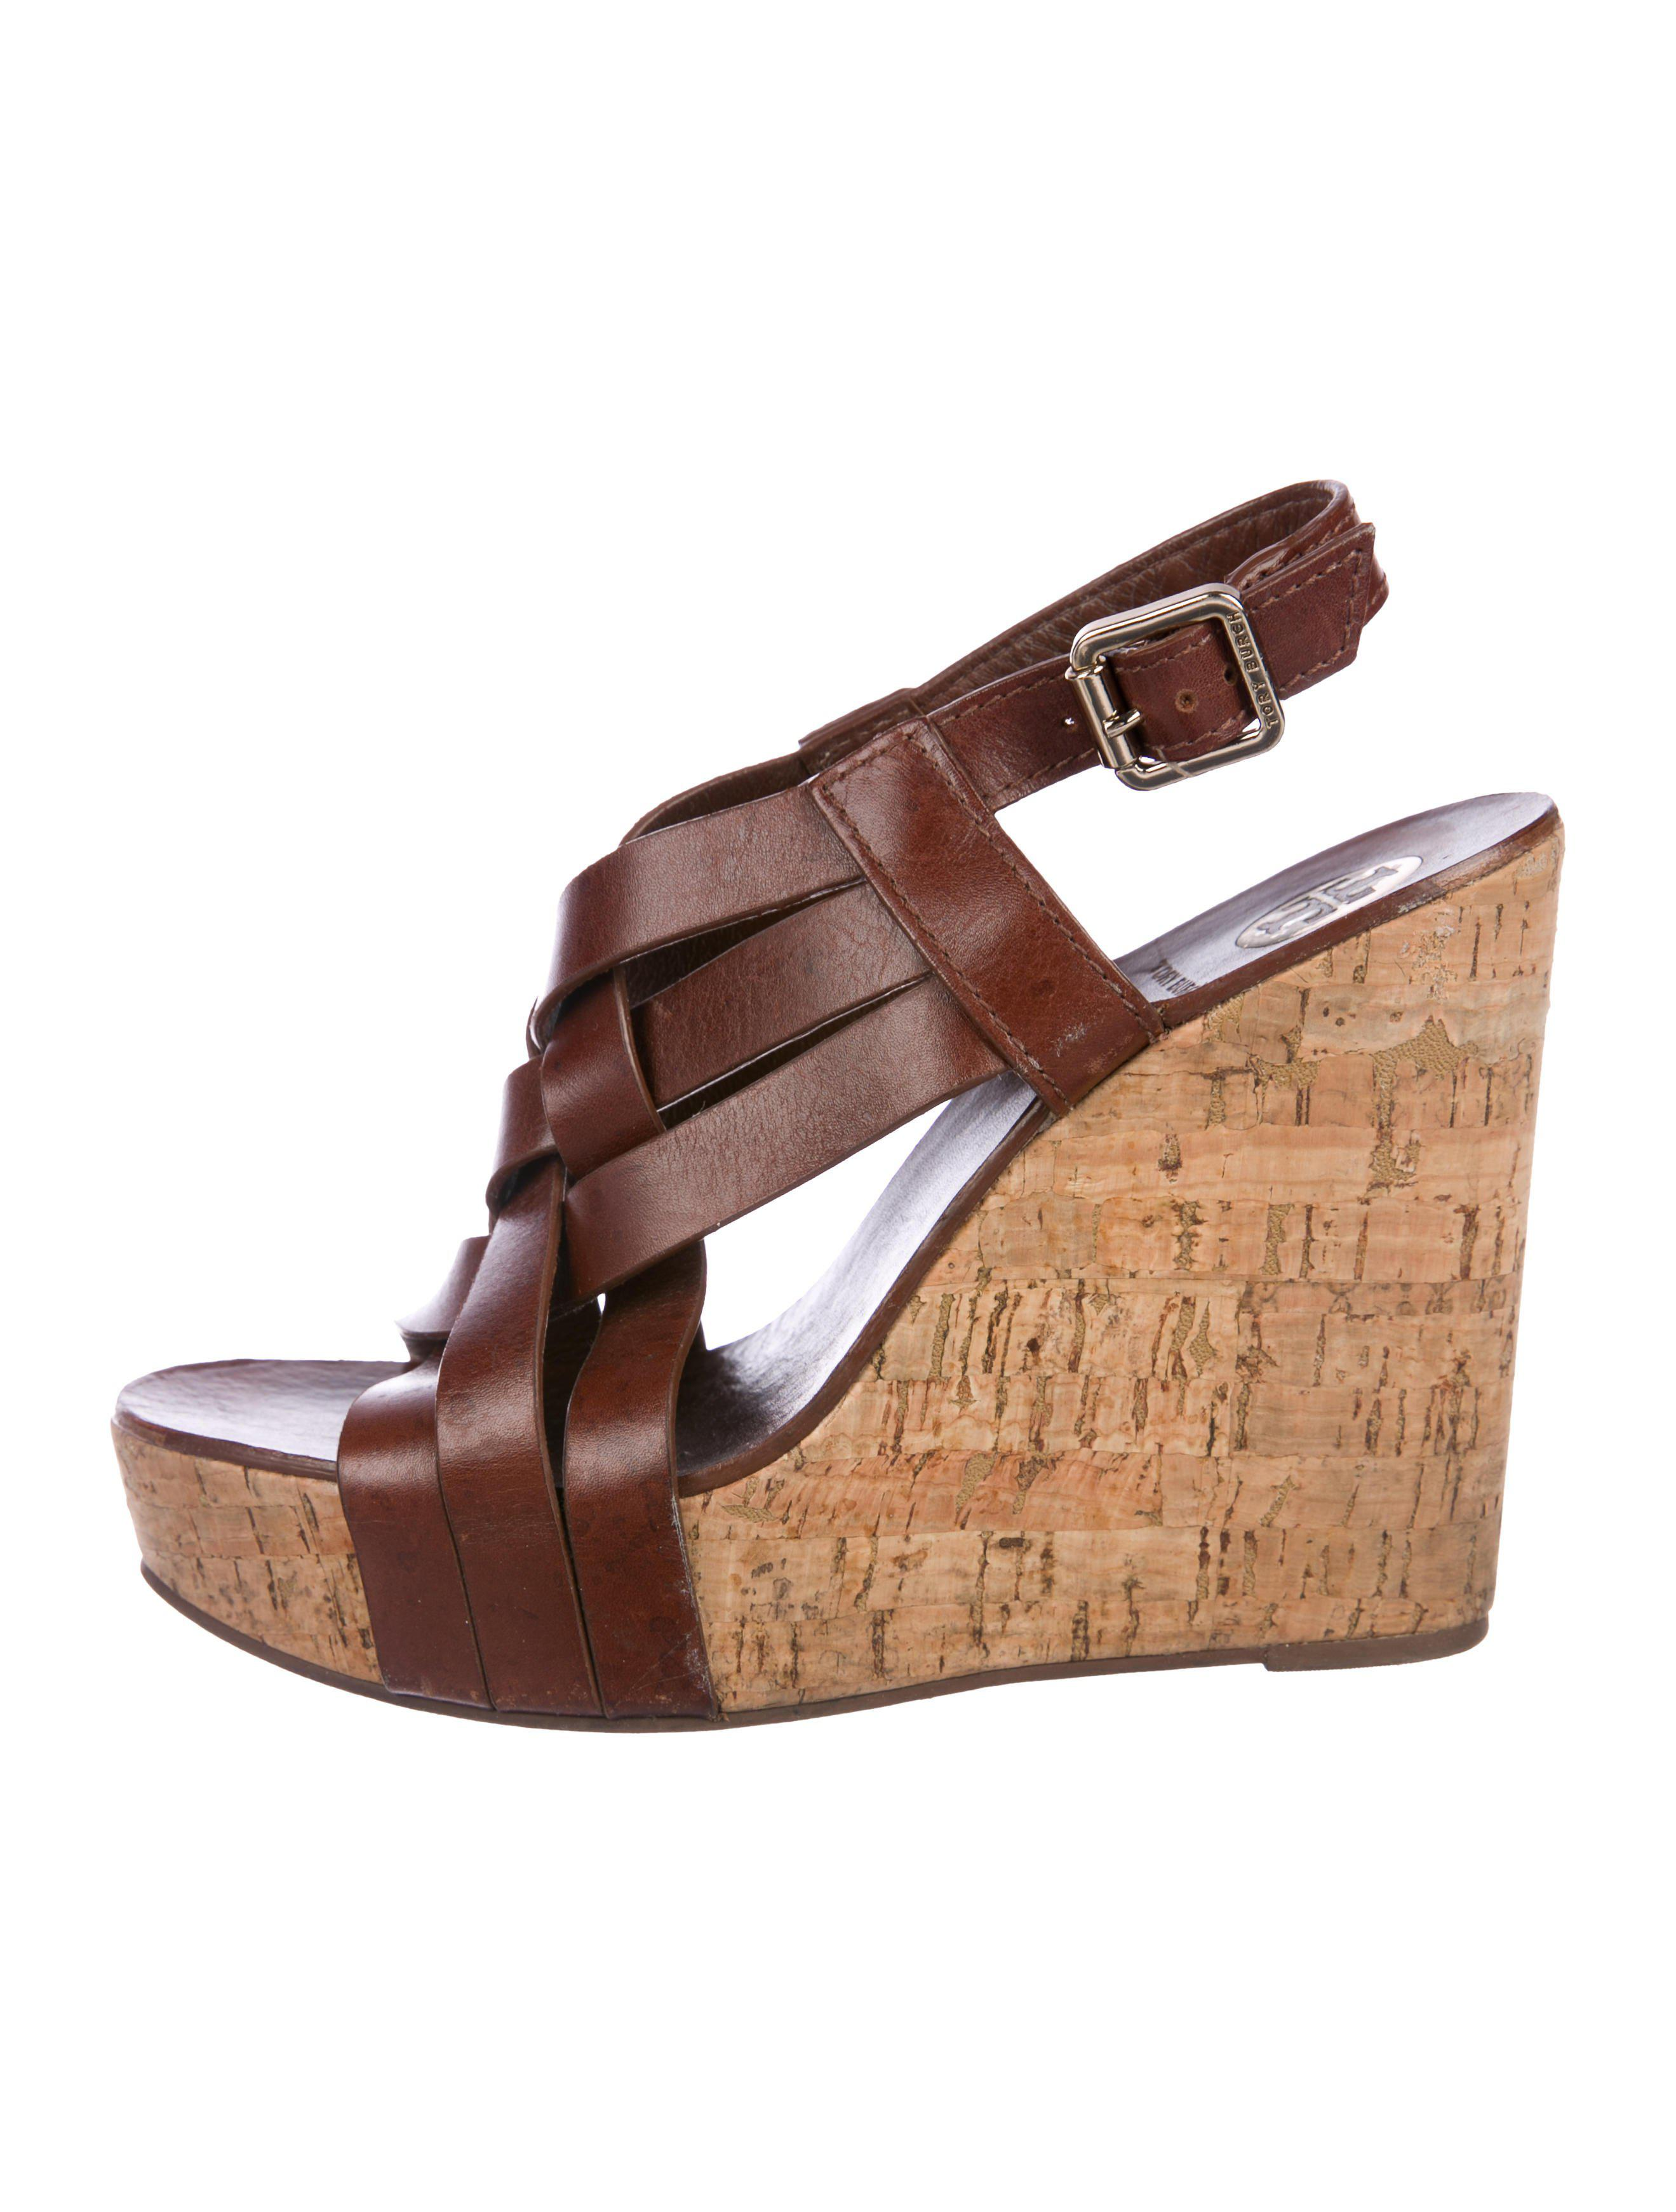 951bf646b Lyst - Tory Burch Crossover Wedge Sandals in Brown